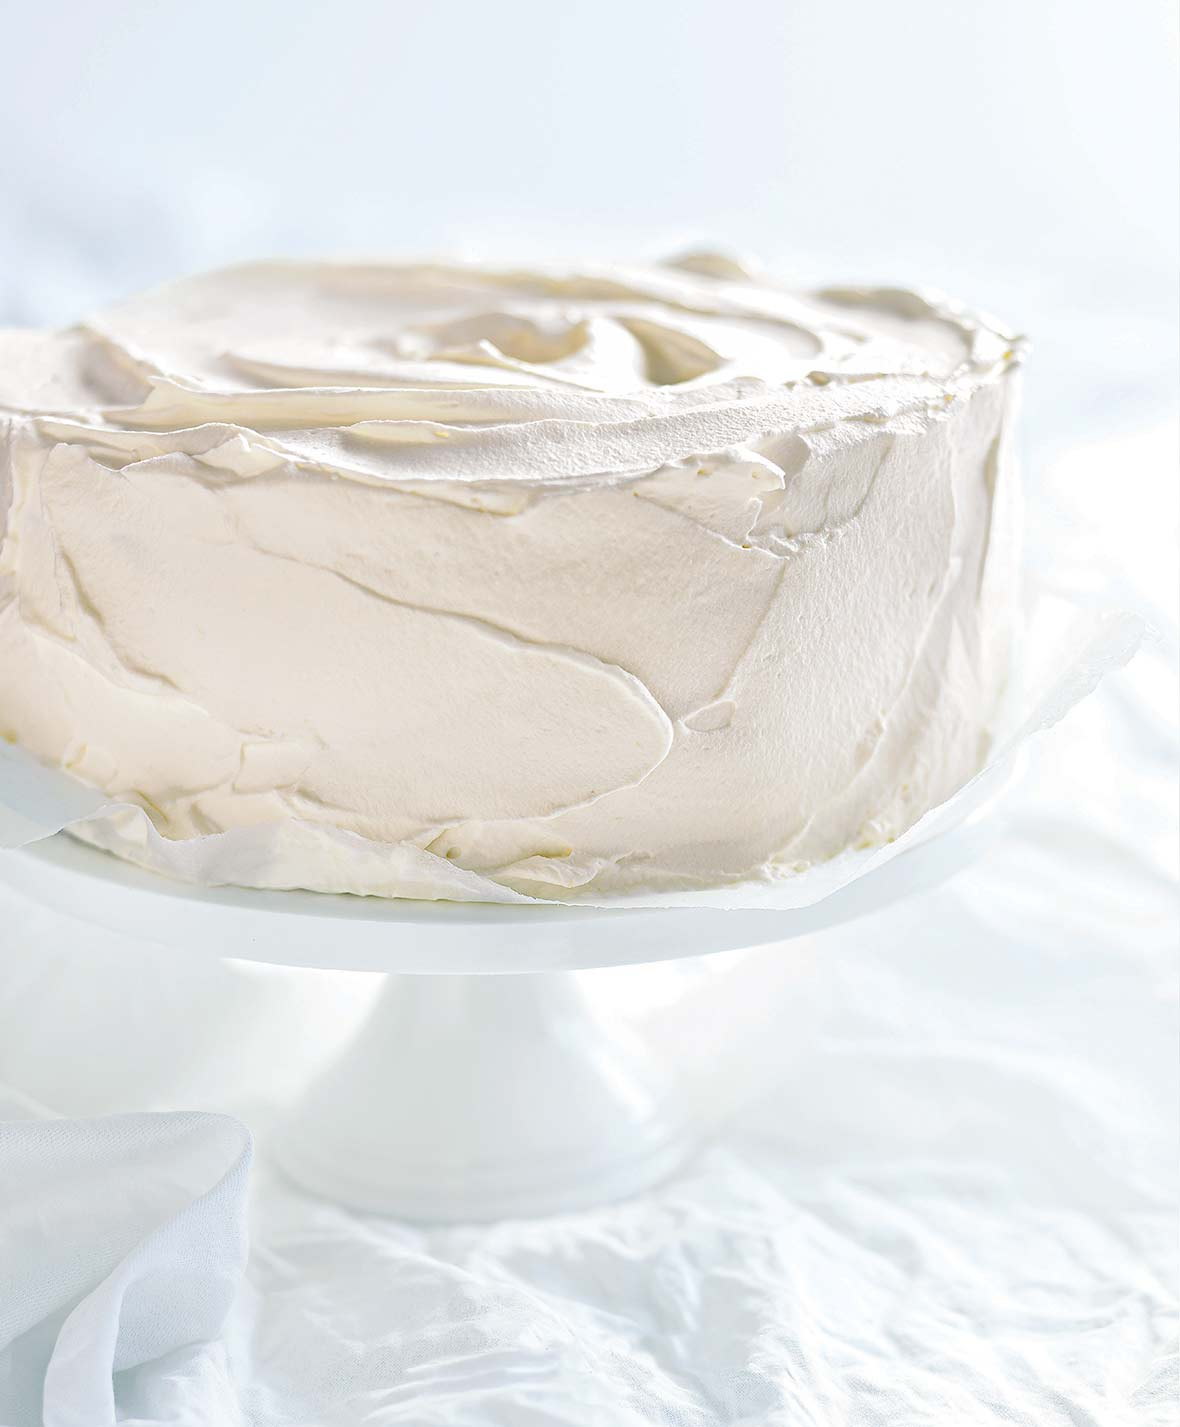 An angel food cake slathered in white chocolate frosting on a white cake stand on a white background